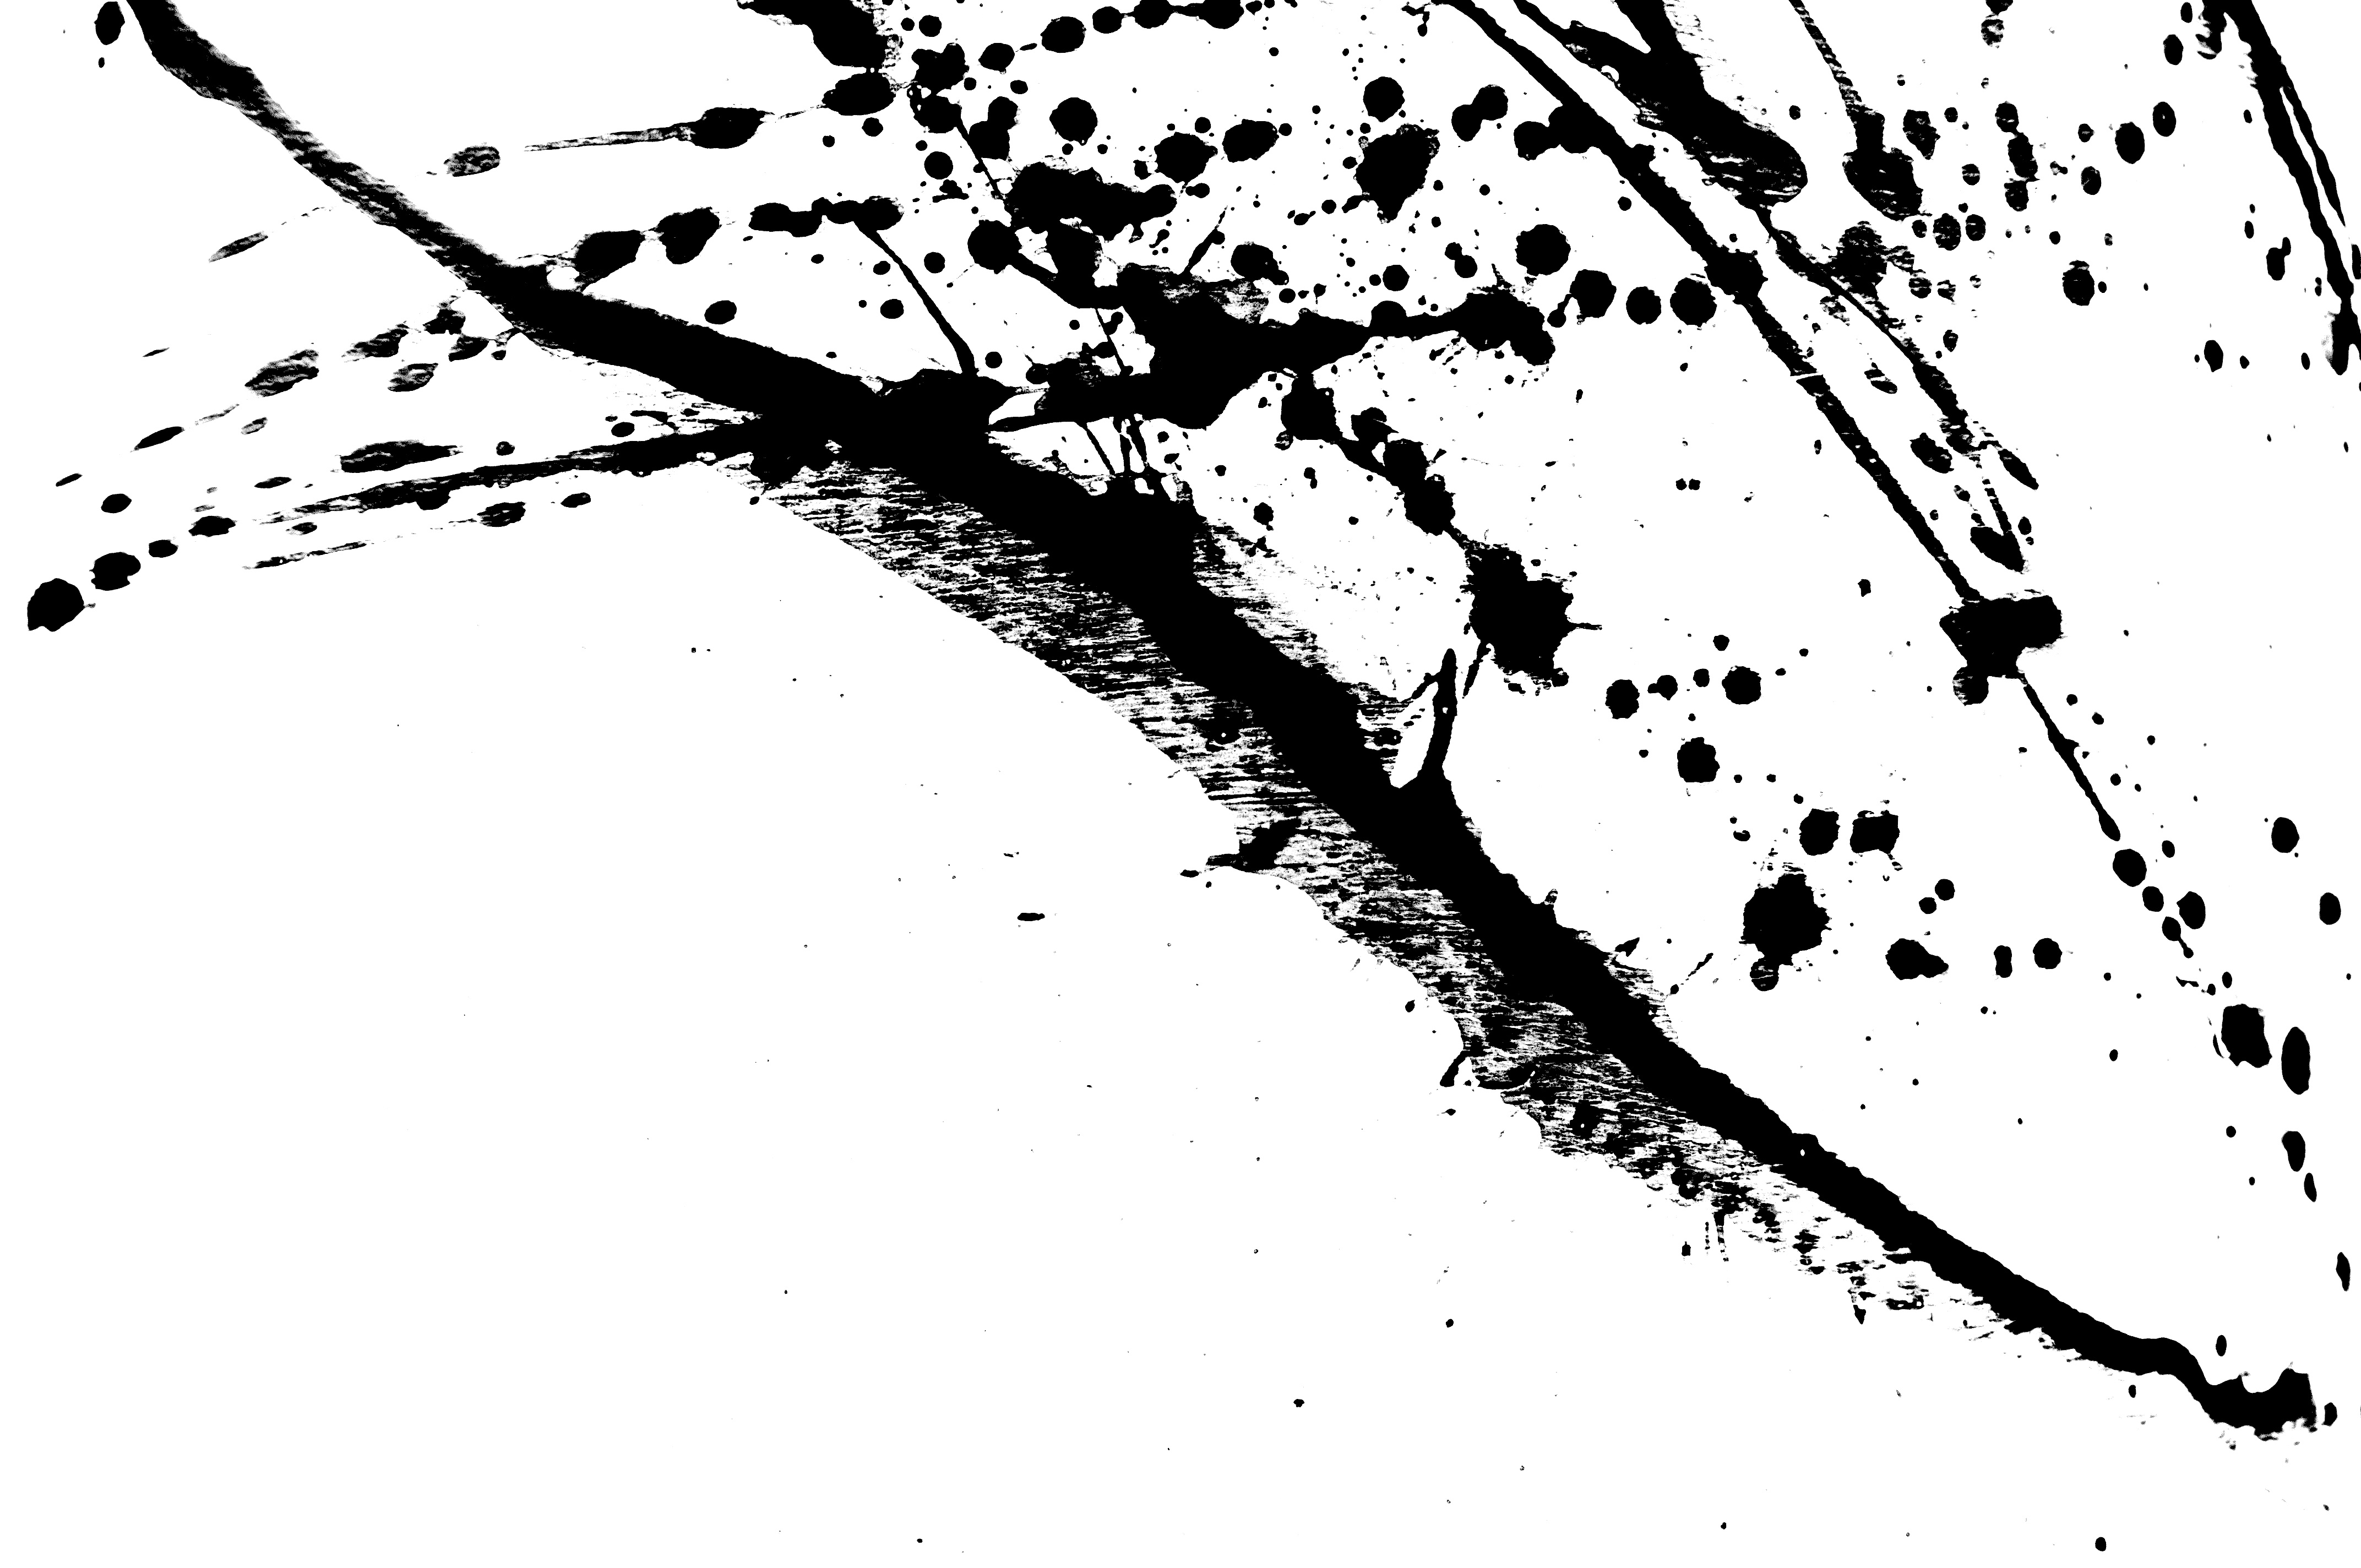 Black ink splatter photo